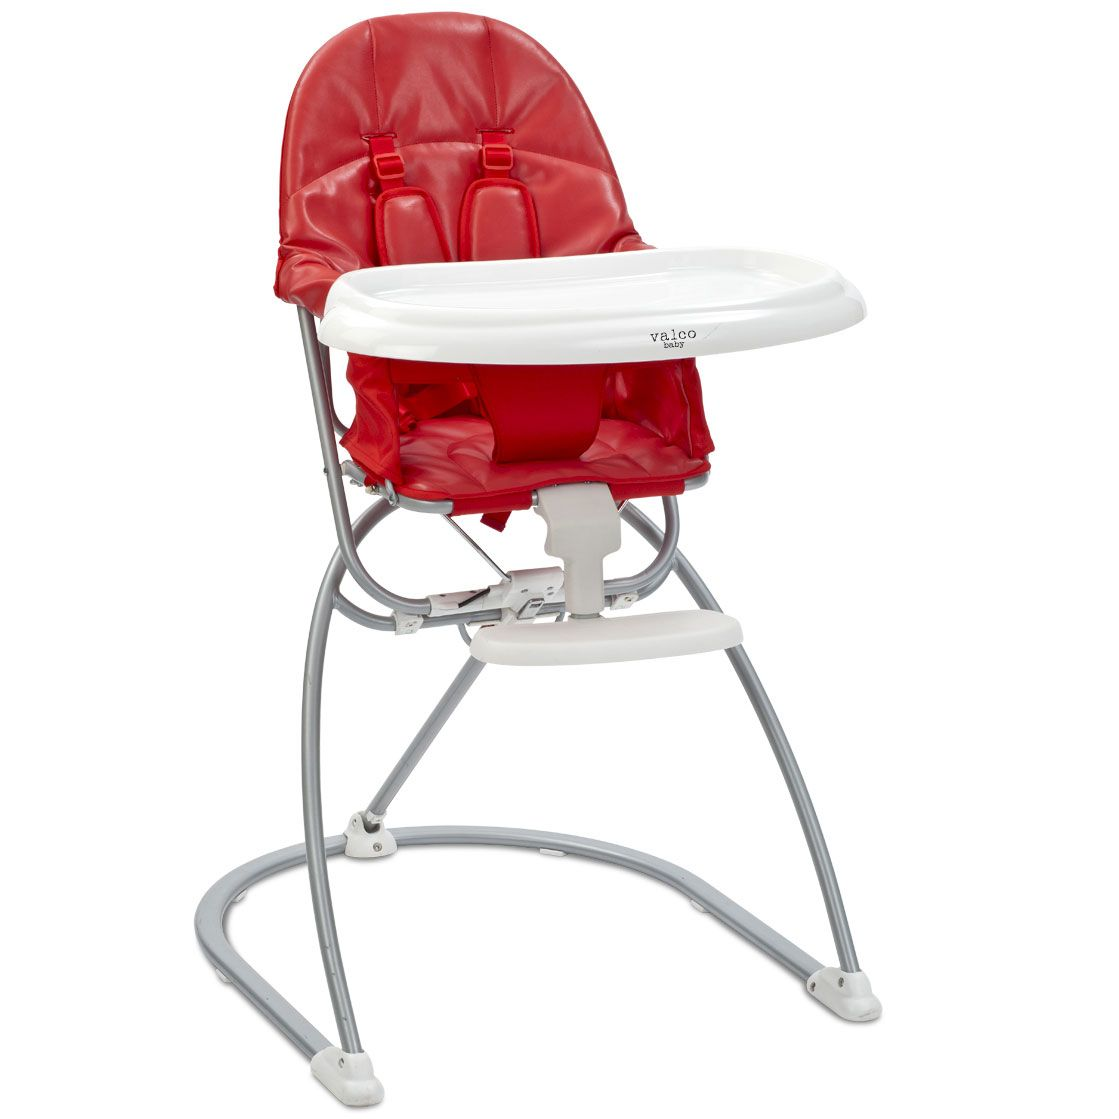 Valco Astro Compact Leatherette High Chair   Cherry